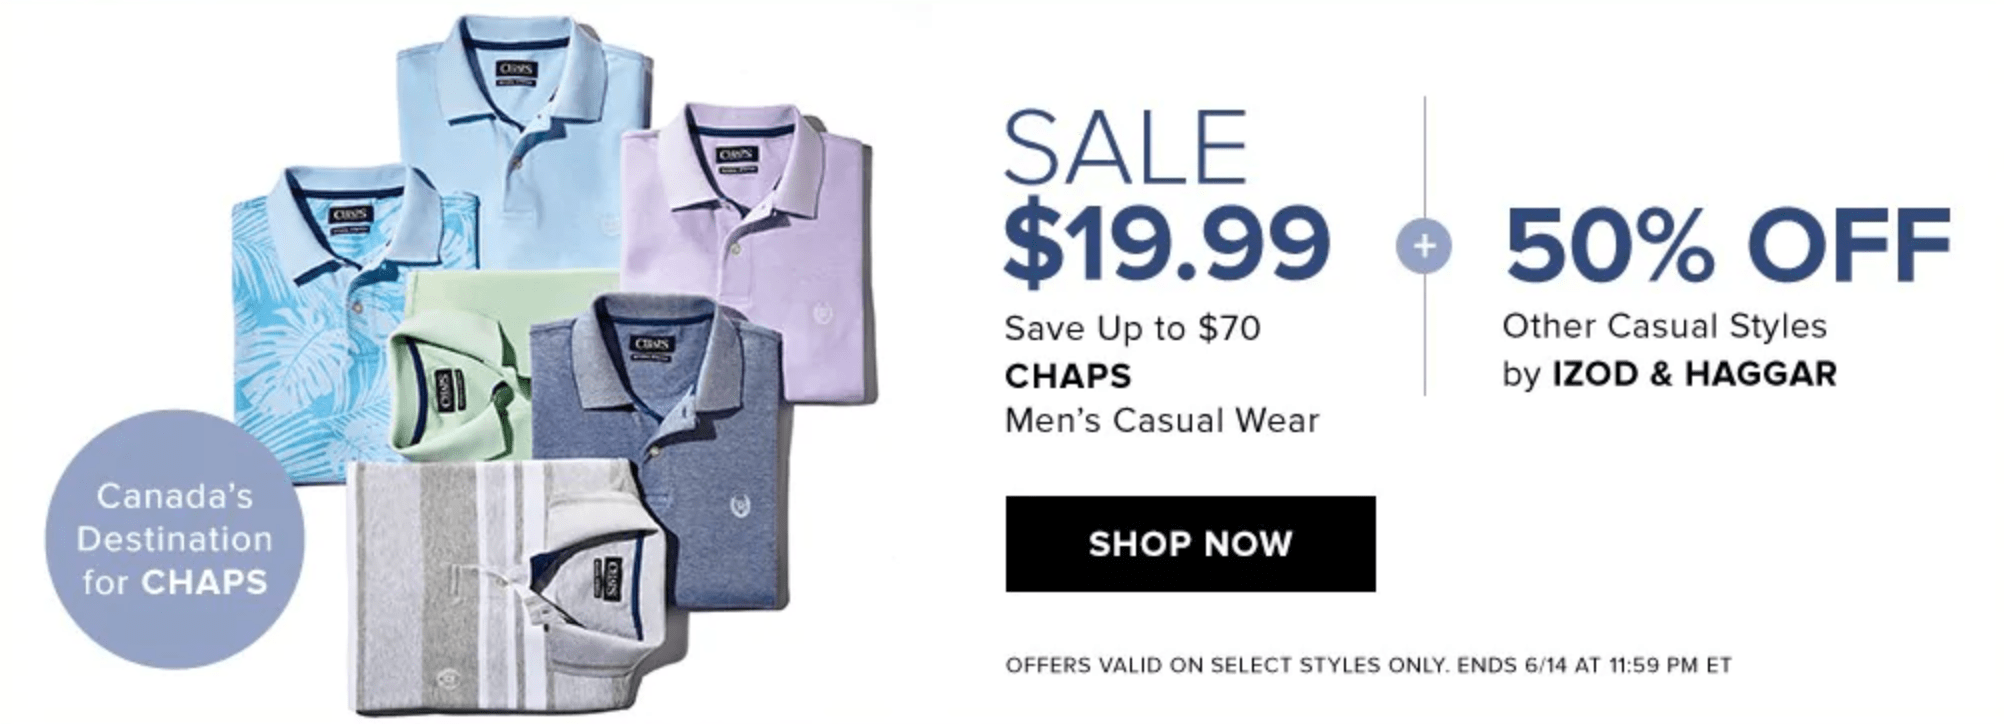 Hudson's Bay Canada Daily Deals $19.99 Chaps Casual Wear + Seriously Hot Summer Savings Up to 50% Off